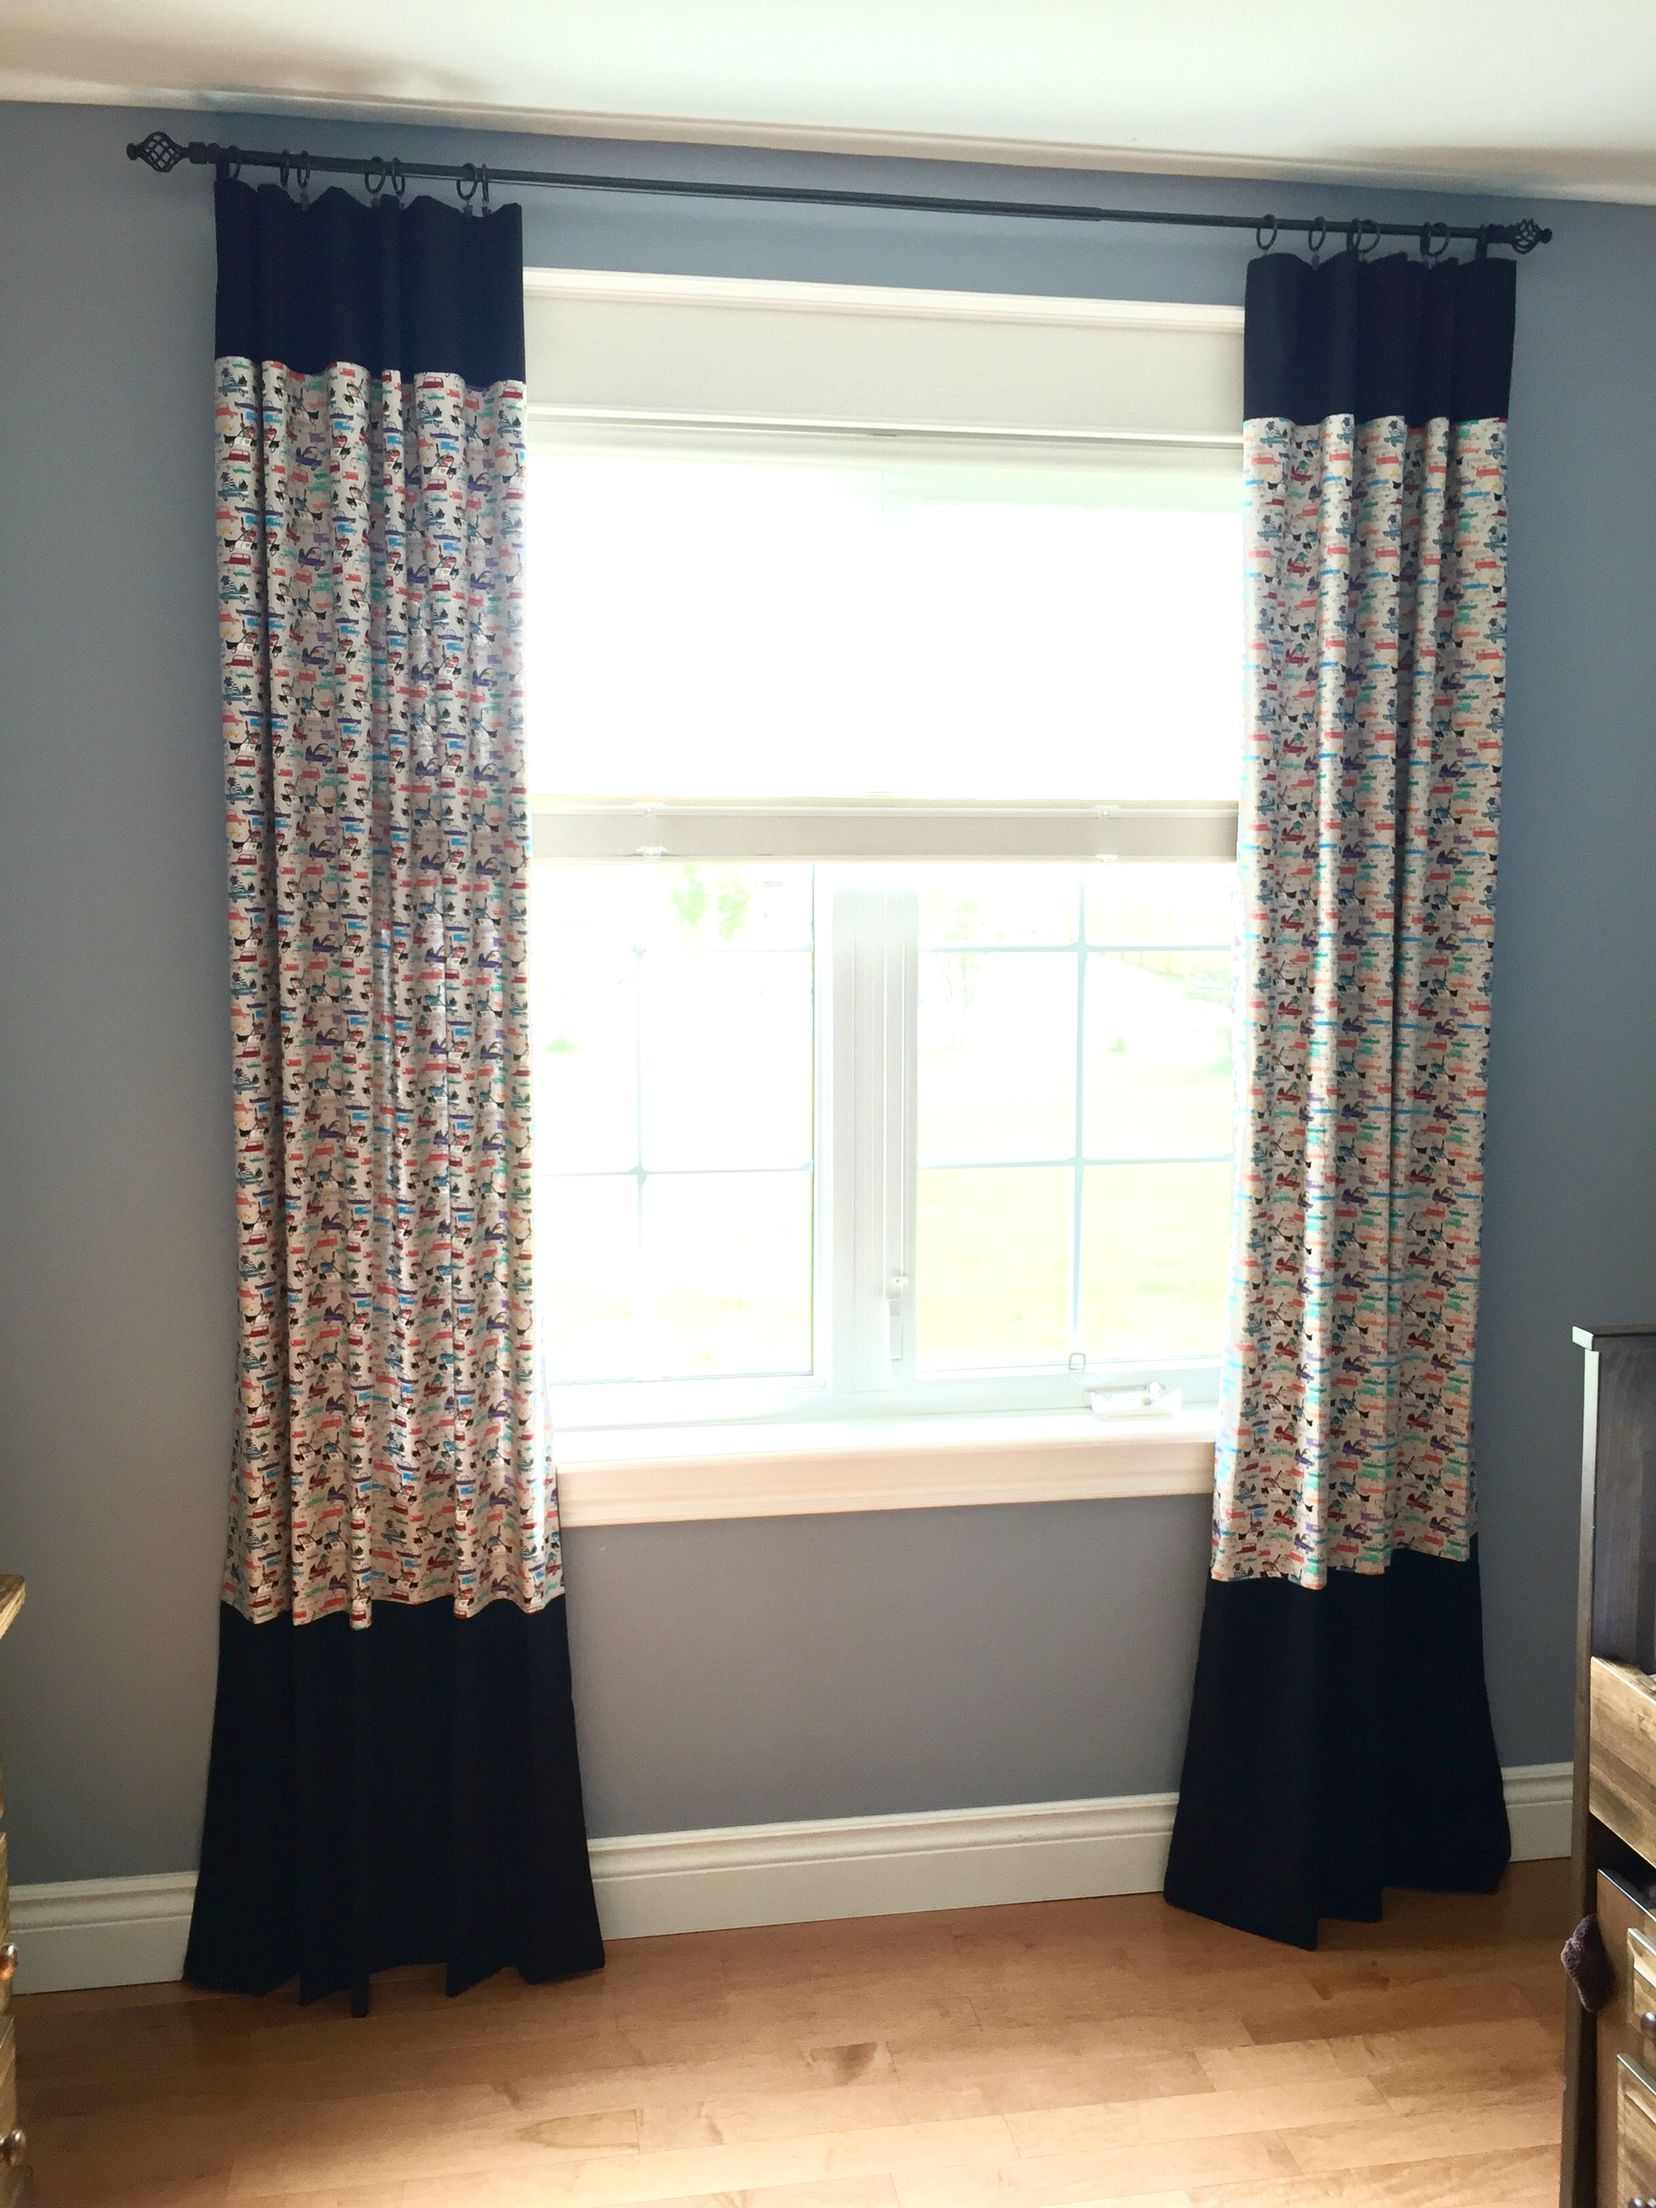 Cops N' Robbers car chase curtains complete! My very first set of curtains. Loving this fabric by Samarra Khaja   SammyK Fabrics, found online at the Fabric Hut. I have so much to learn about sewing and I'm learning more each and every stitch.  #policetheme #diymommy #kidsfabric #beginnersewing #customcurtains